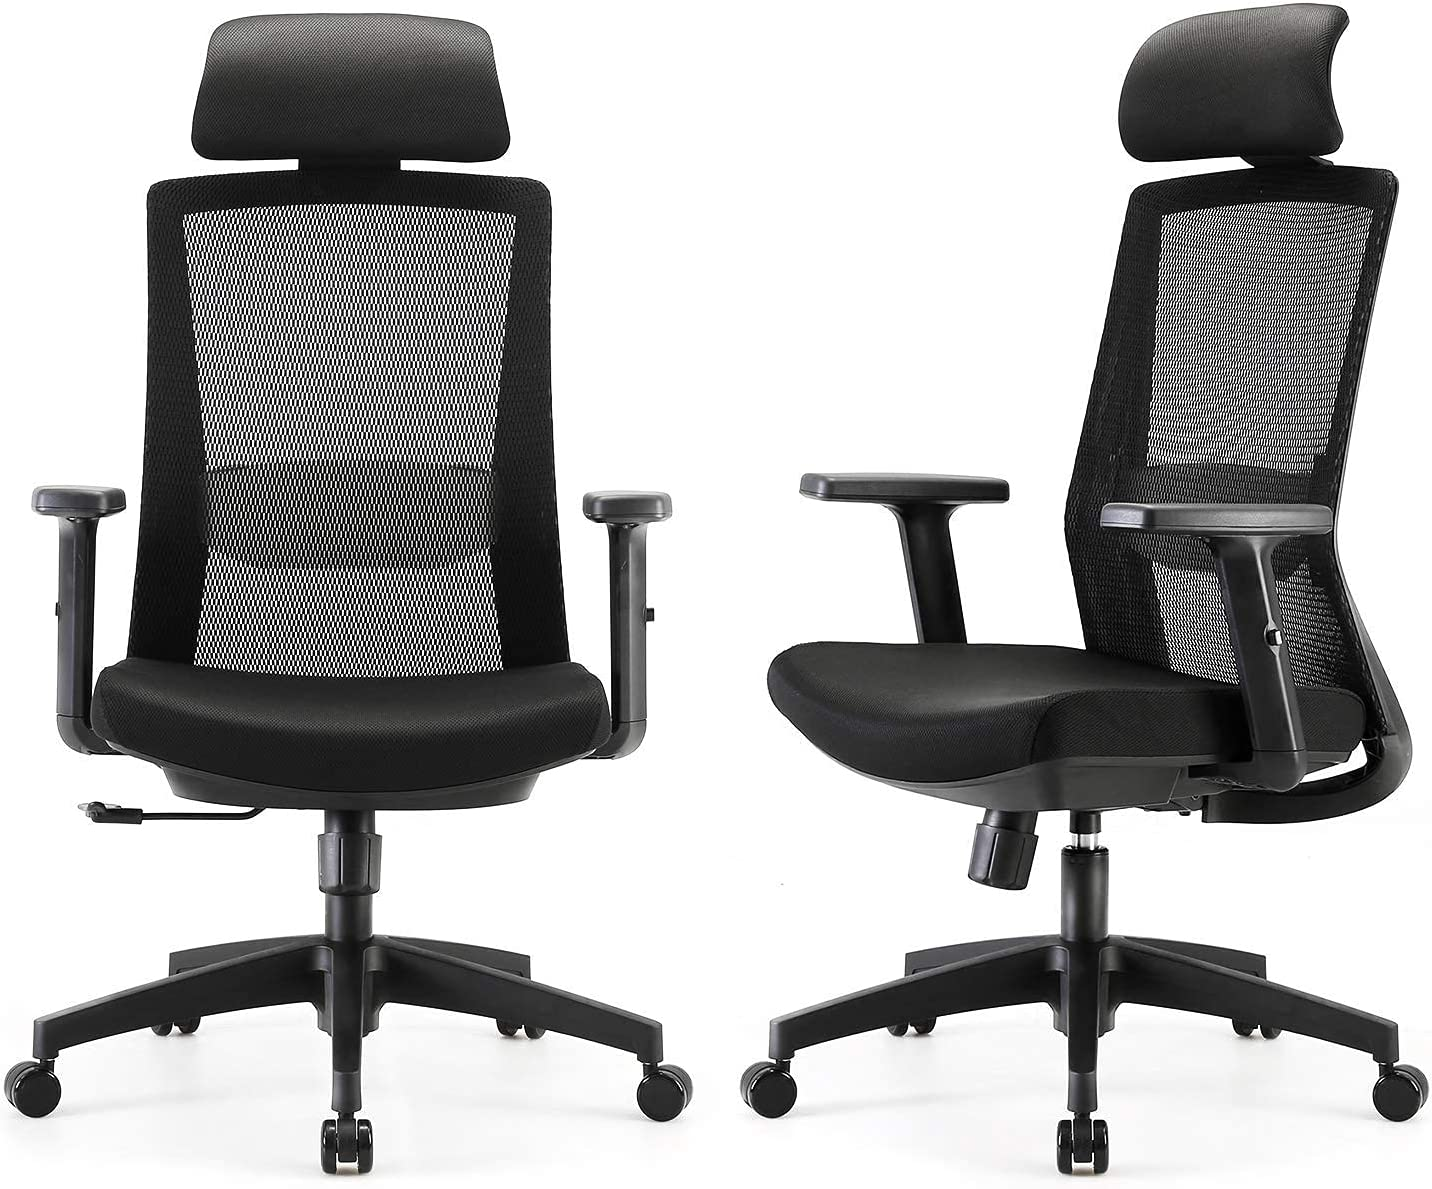 100% quality warranty SIHOO Ergonomic Home Office Chair Desk with OFFicial site Swivel Adjust